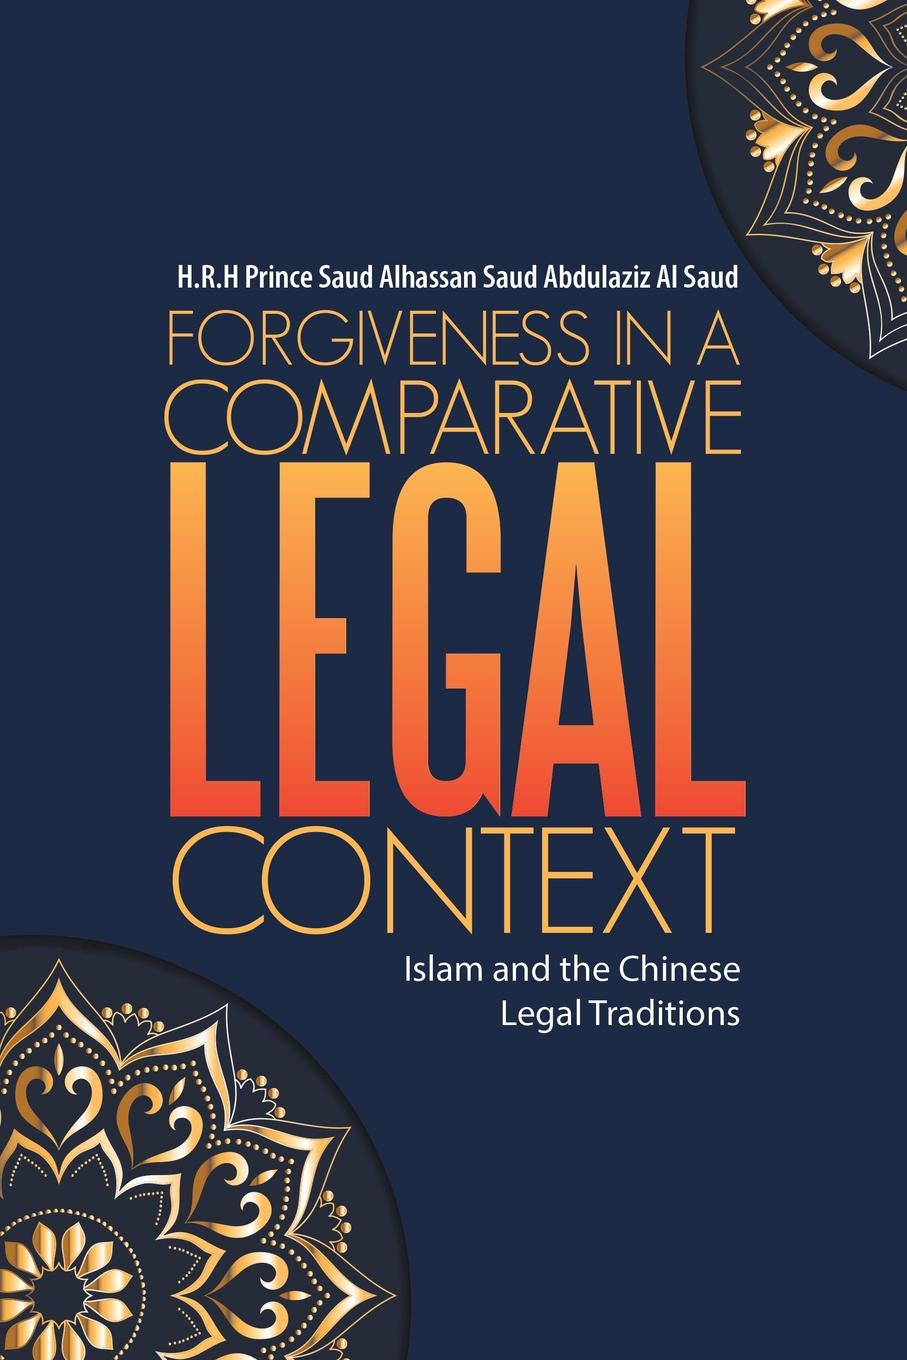 H.R.H Prince Saud Alhassan Saud Abdulazi Forgiveness in a Comparative Legal Context. Islam and the Chinese Legal Traditions legal writings